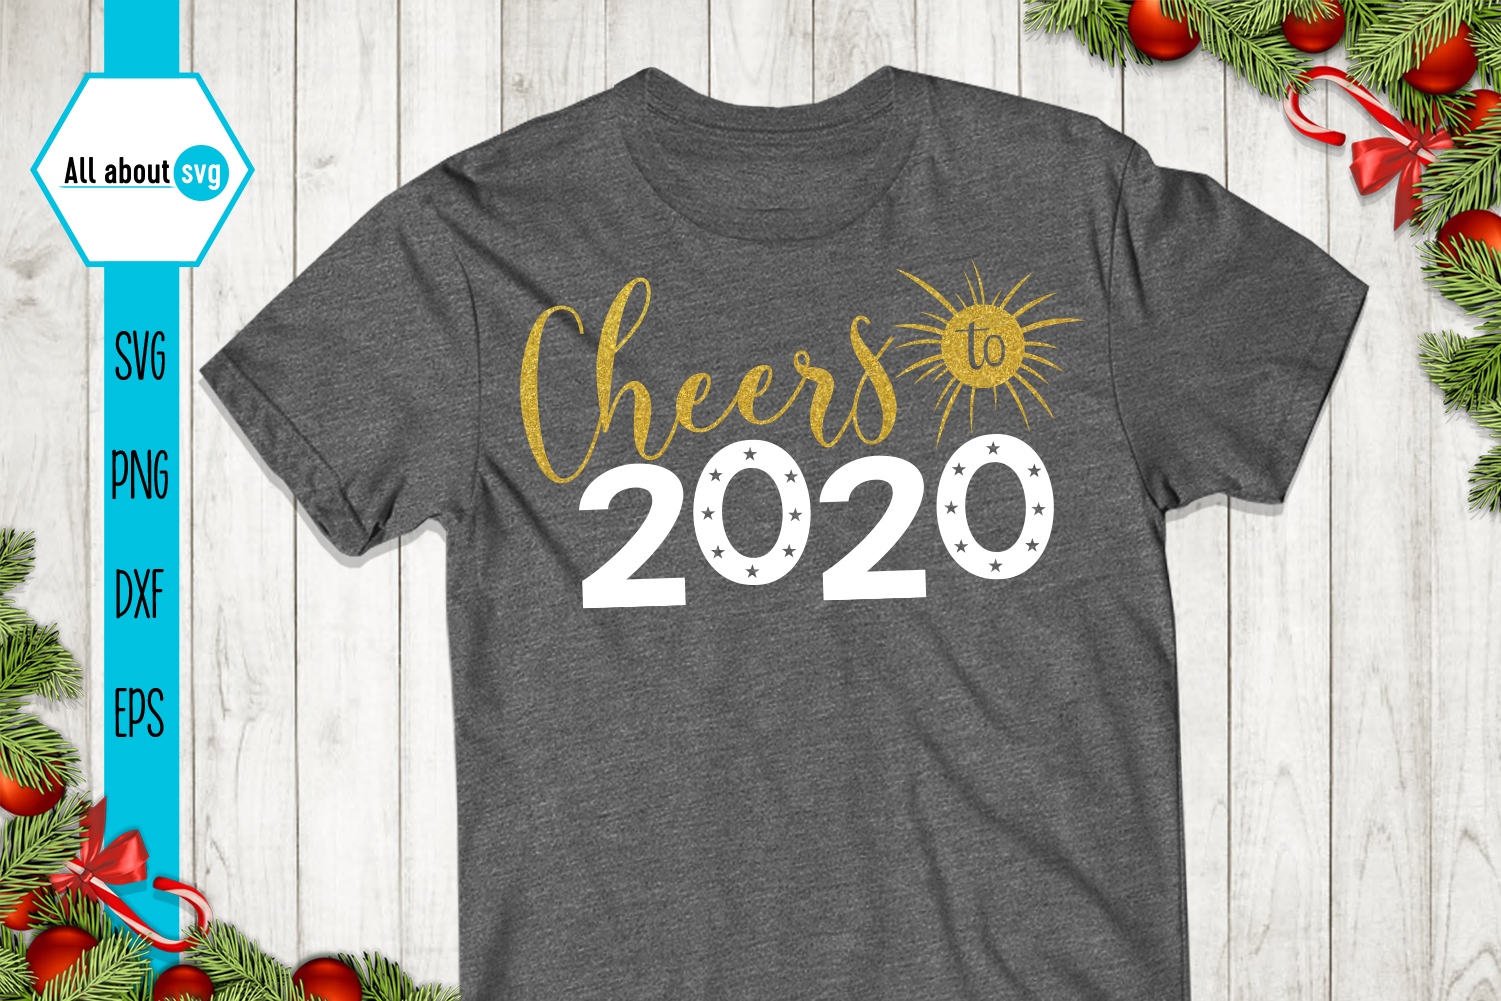 Cheers To 2020 Svg, New Year Glitter Svg example image 4